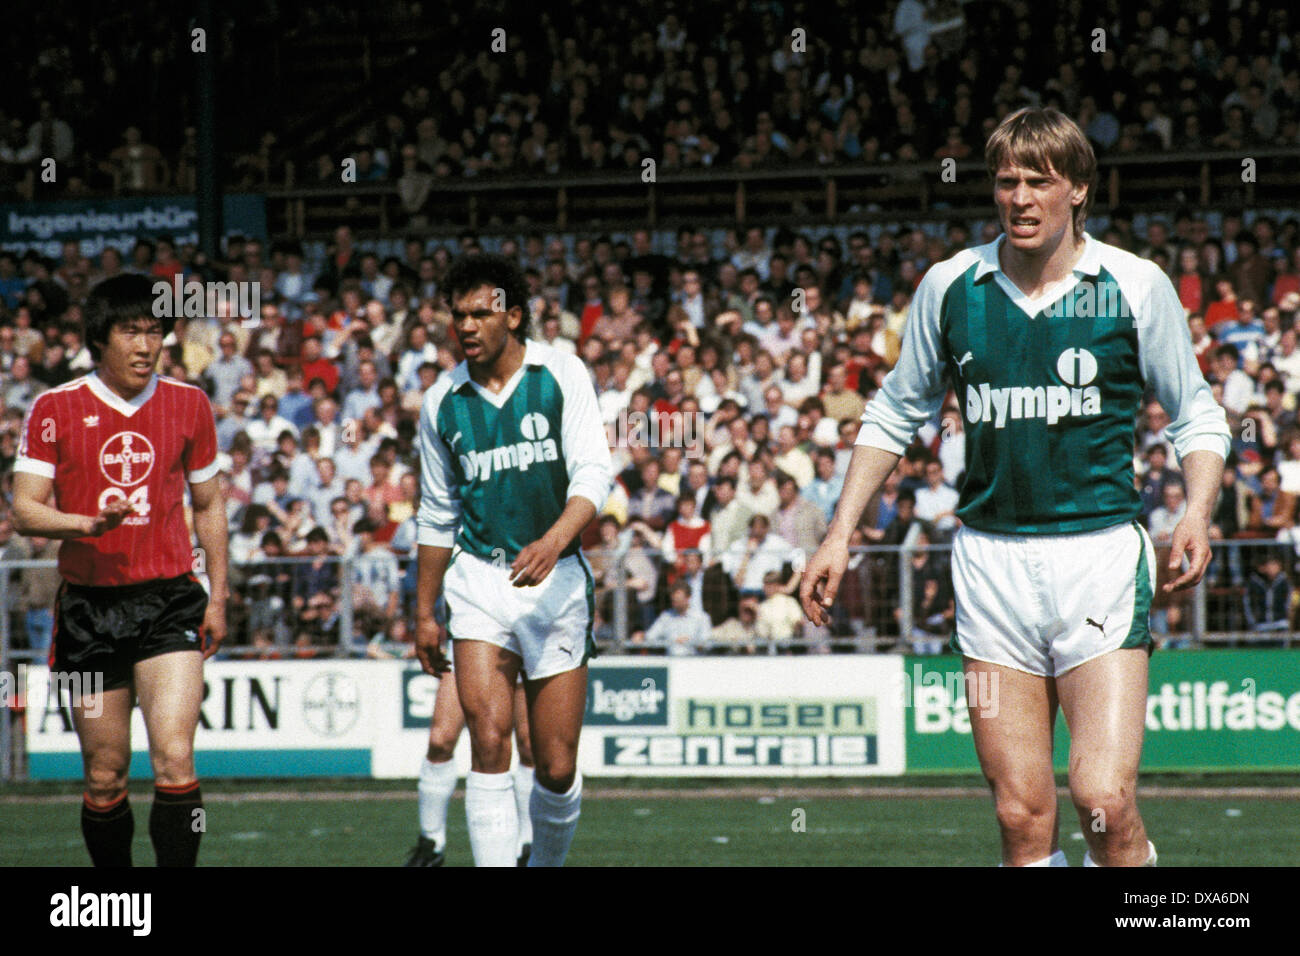 football, Bundesliga, 1983/1984, Ulrich Haberland Stadium, Bayer 04 Leverkusen versus SV Werder Bremen 0:0, scene of the match, f.l.t.r. Bum-Kun Cha (Bayer), Rigobert Gruber (Werder), Wolfgang Sidka (Werder) - Stock Image